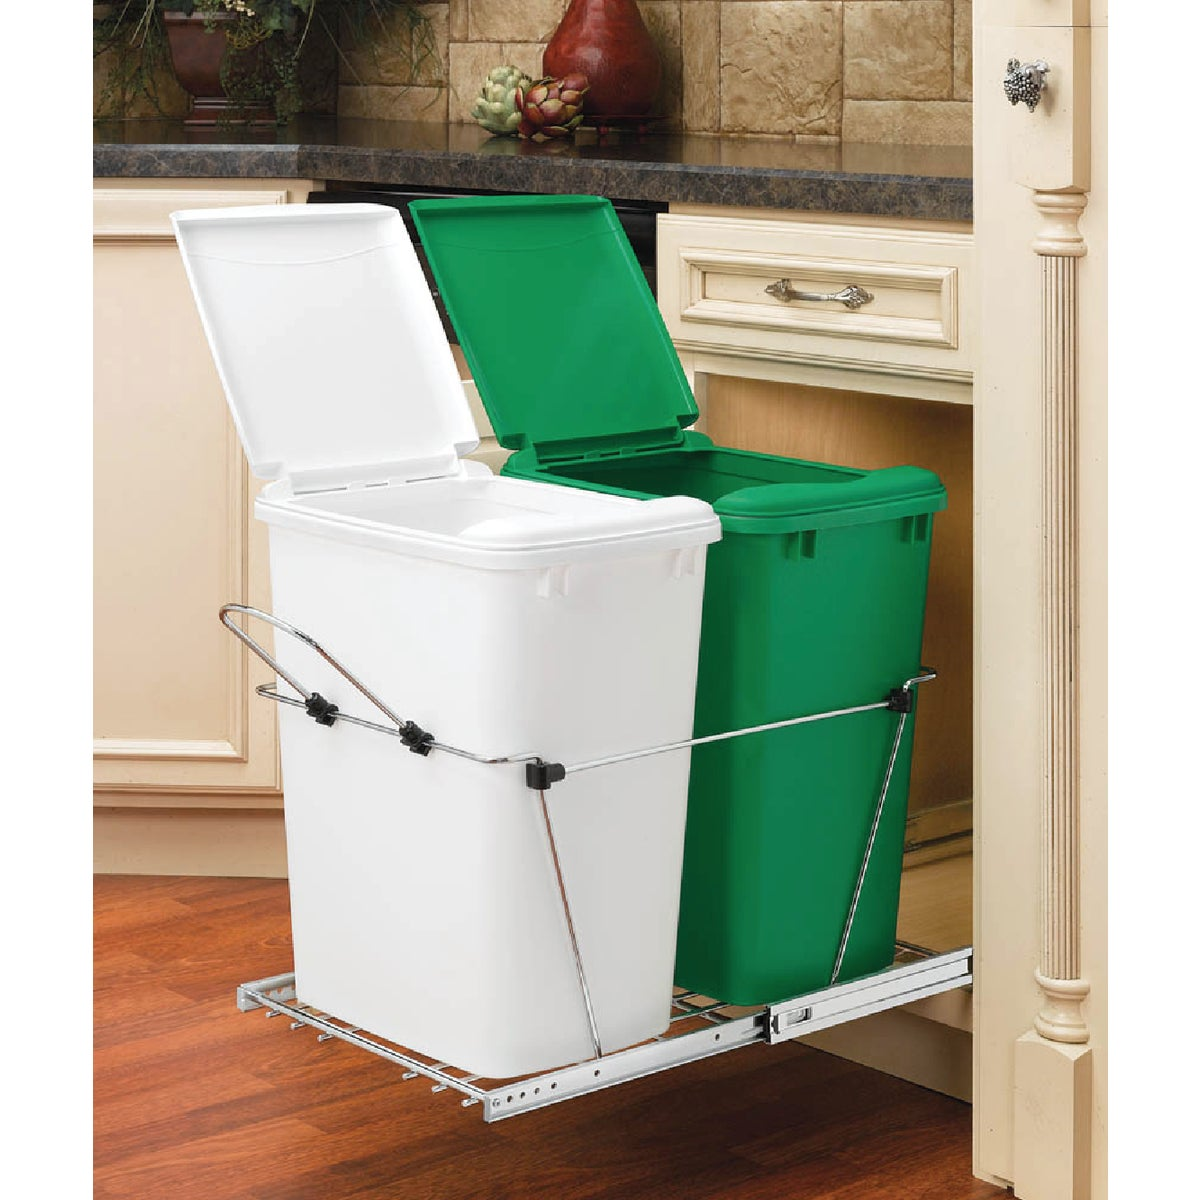 DBL 35QT RECYCLE CENTER - RV-18PB-11RL-5 by Rev A Shelf